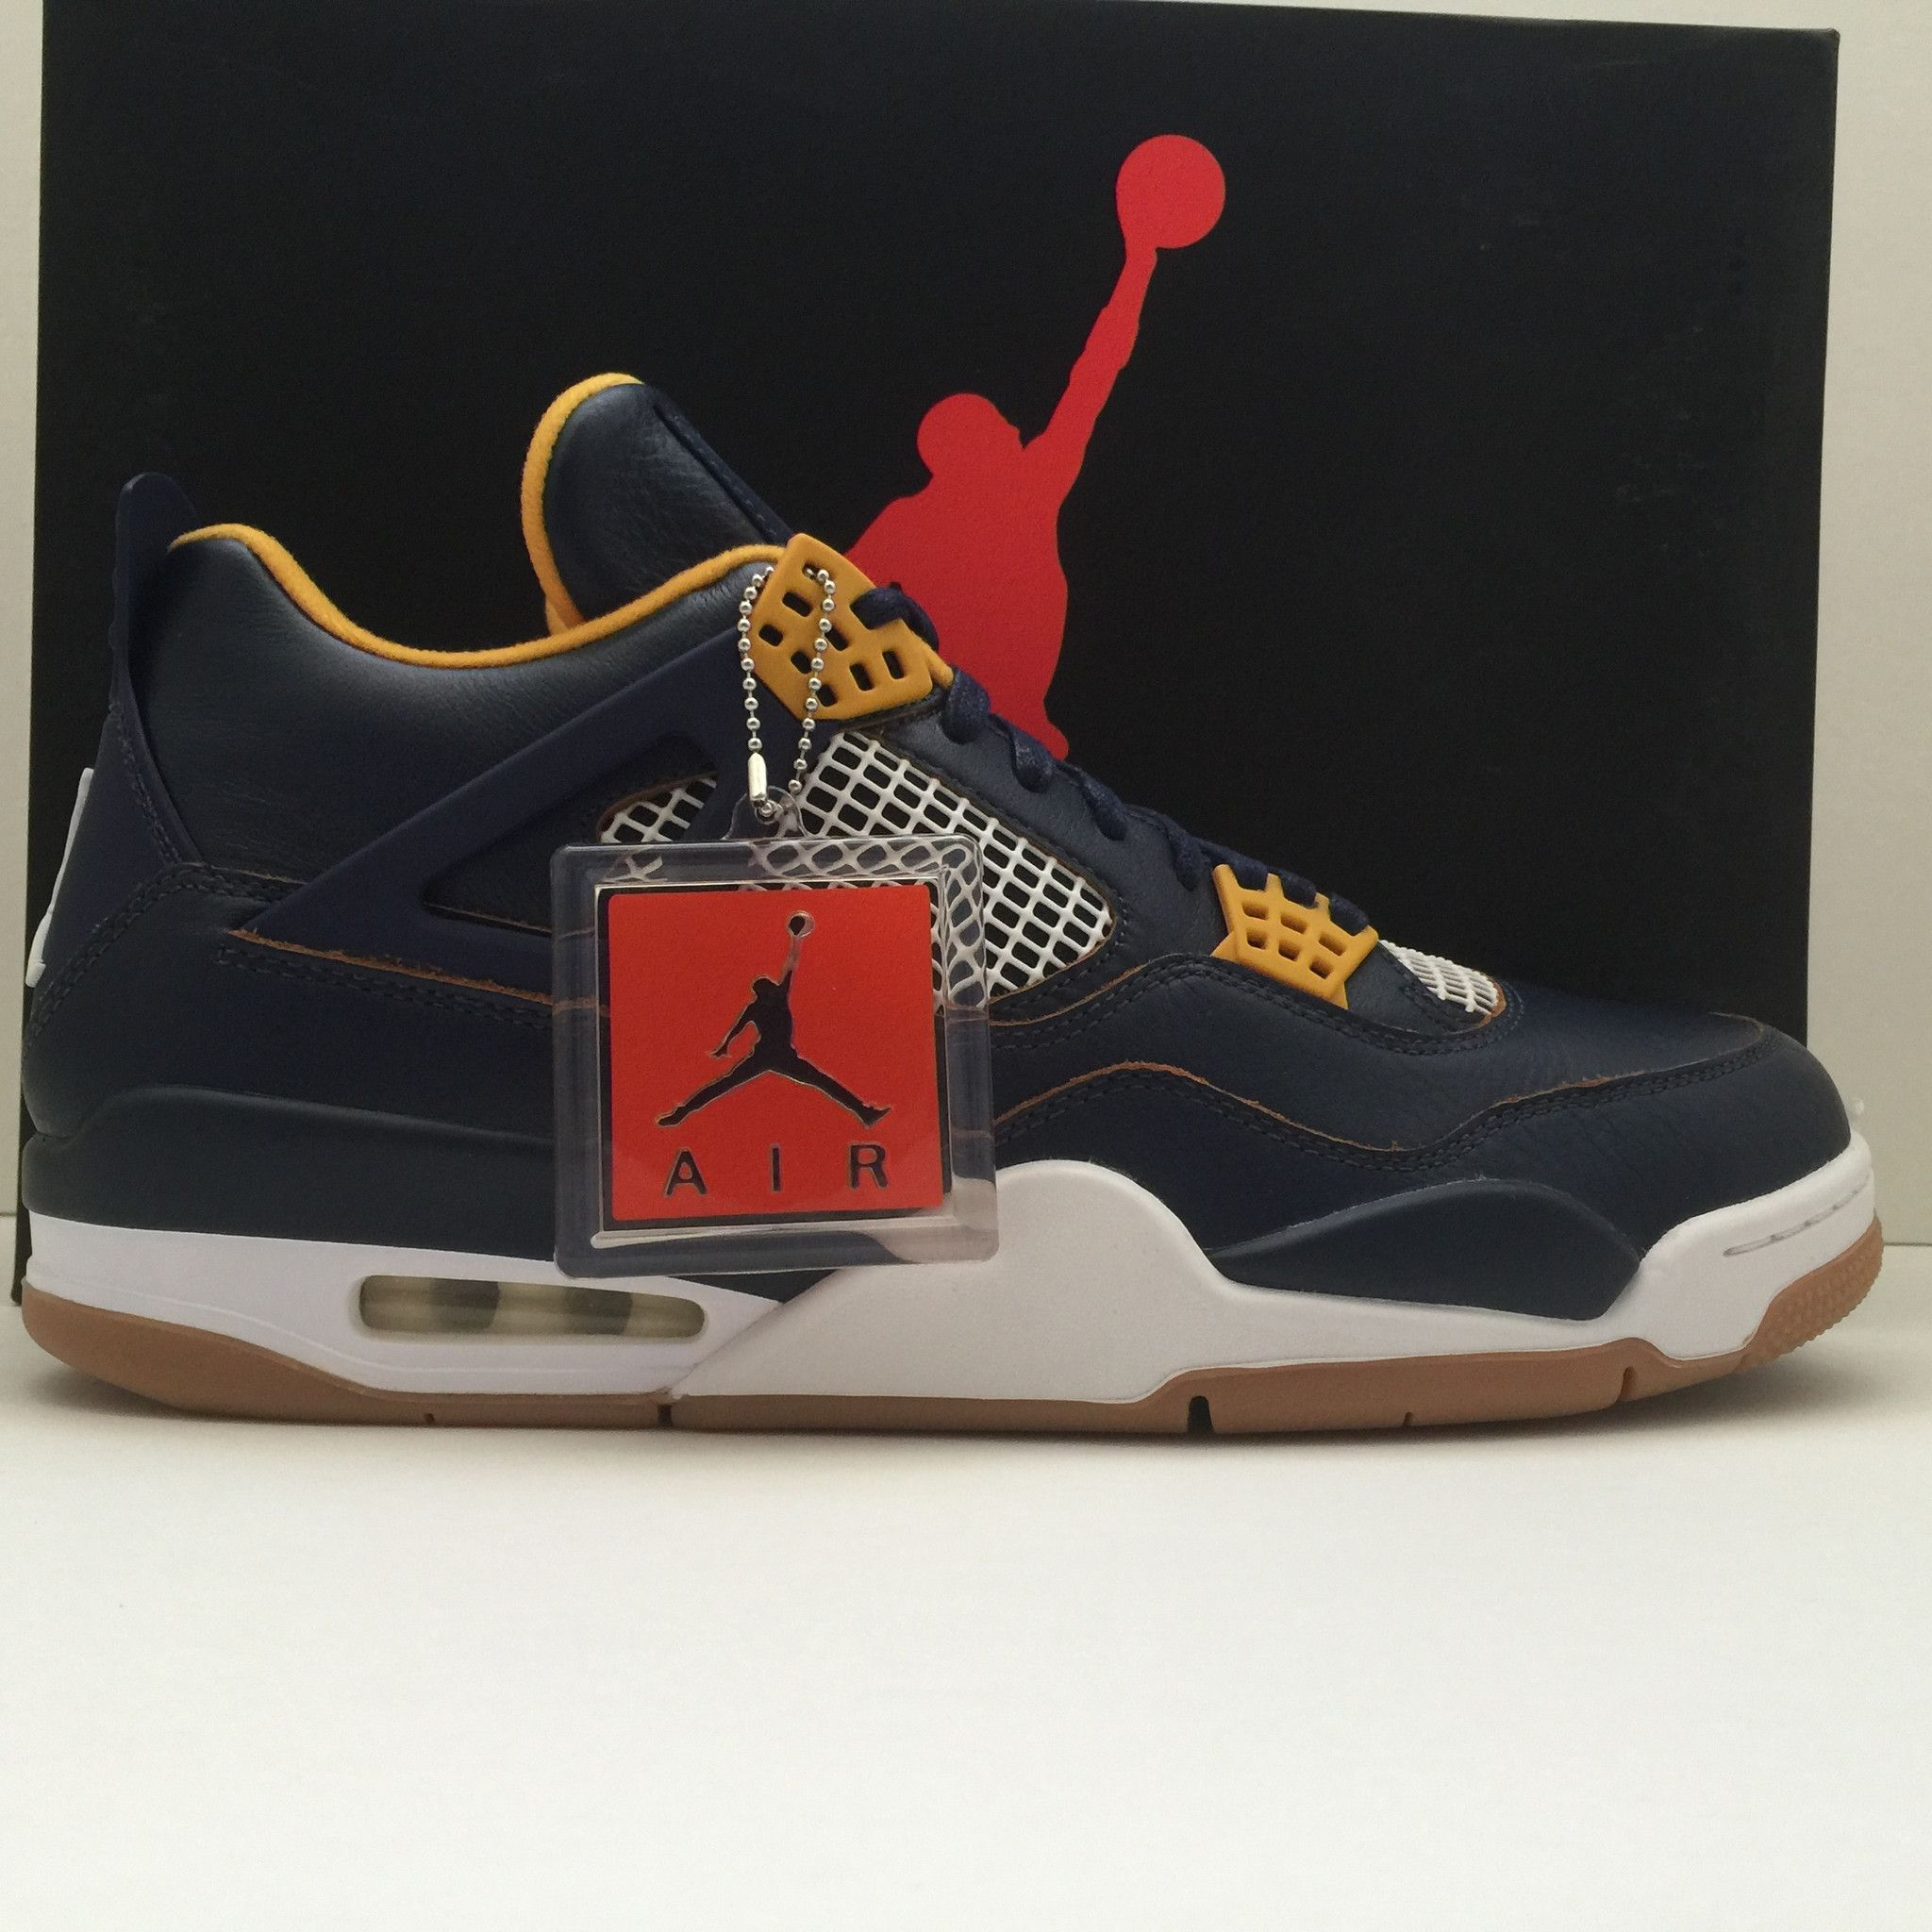 best service 3c5fa b8598 ... retro vii 7 gmp gold medal pack black metallic gold sail 4.5 lot 8b587  2f21c  where to buy 2018 outlet f07cd 12279 daisy cecil on black gums air  jordan ...